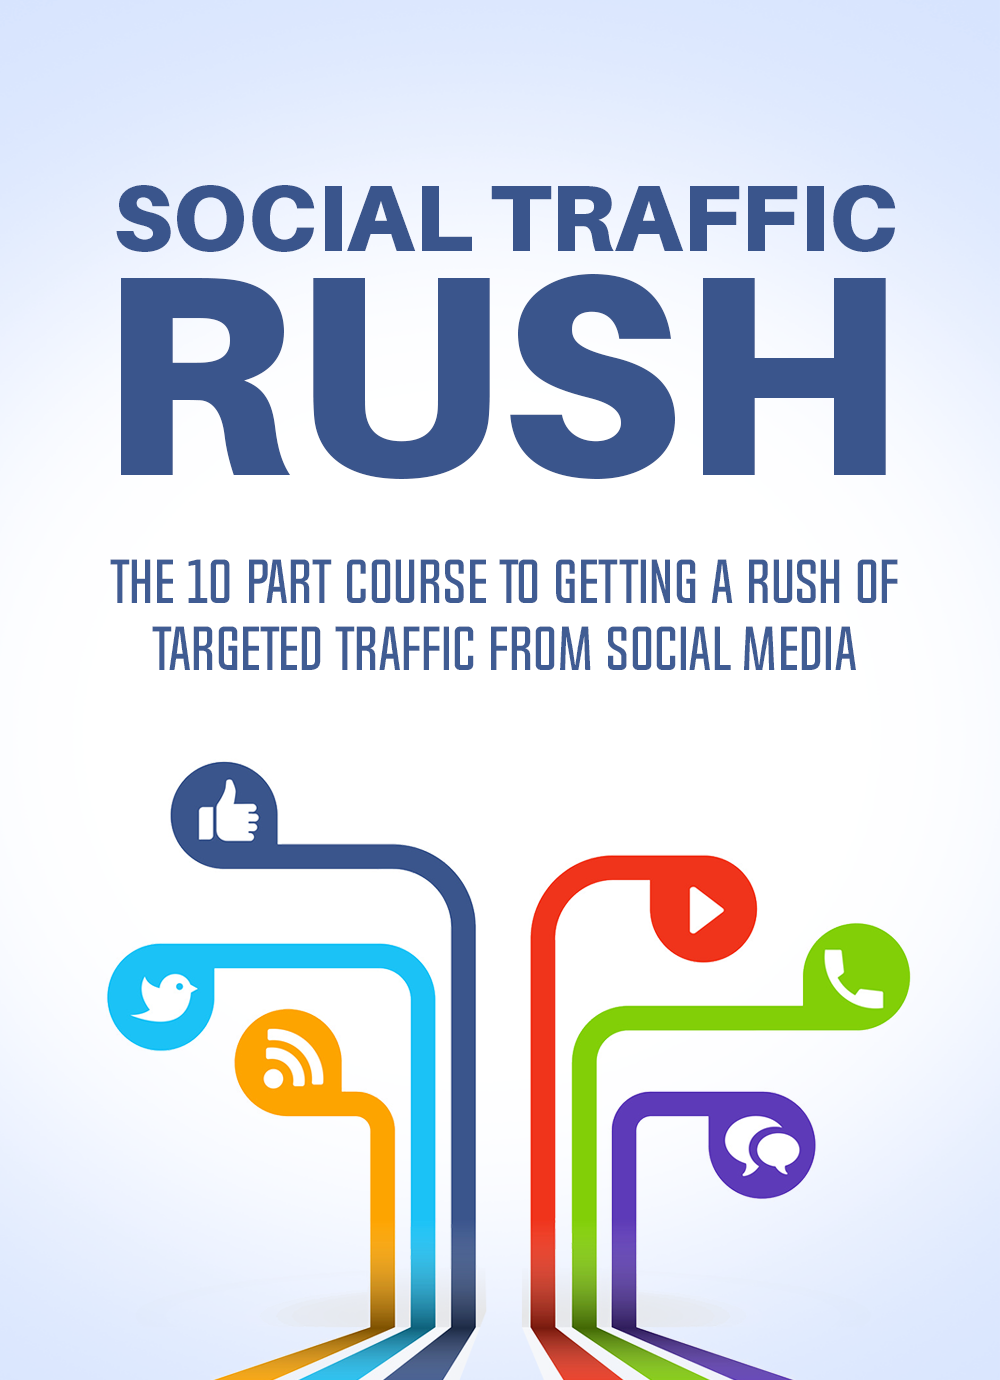 Social Traffic Rush (The 10 Part Course To Getting A Rush Of Targeted Traffic From Social Media) Ebook's Ebook Image